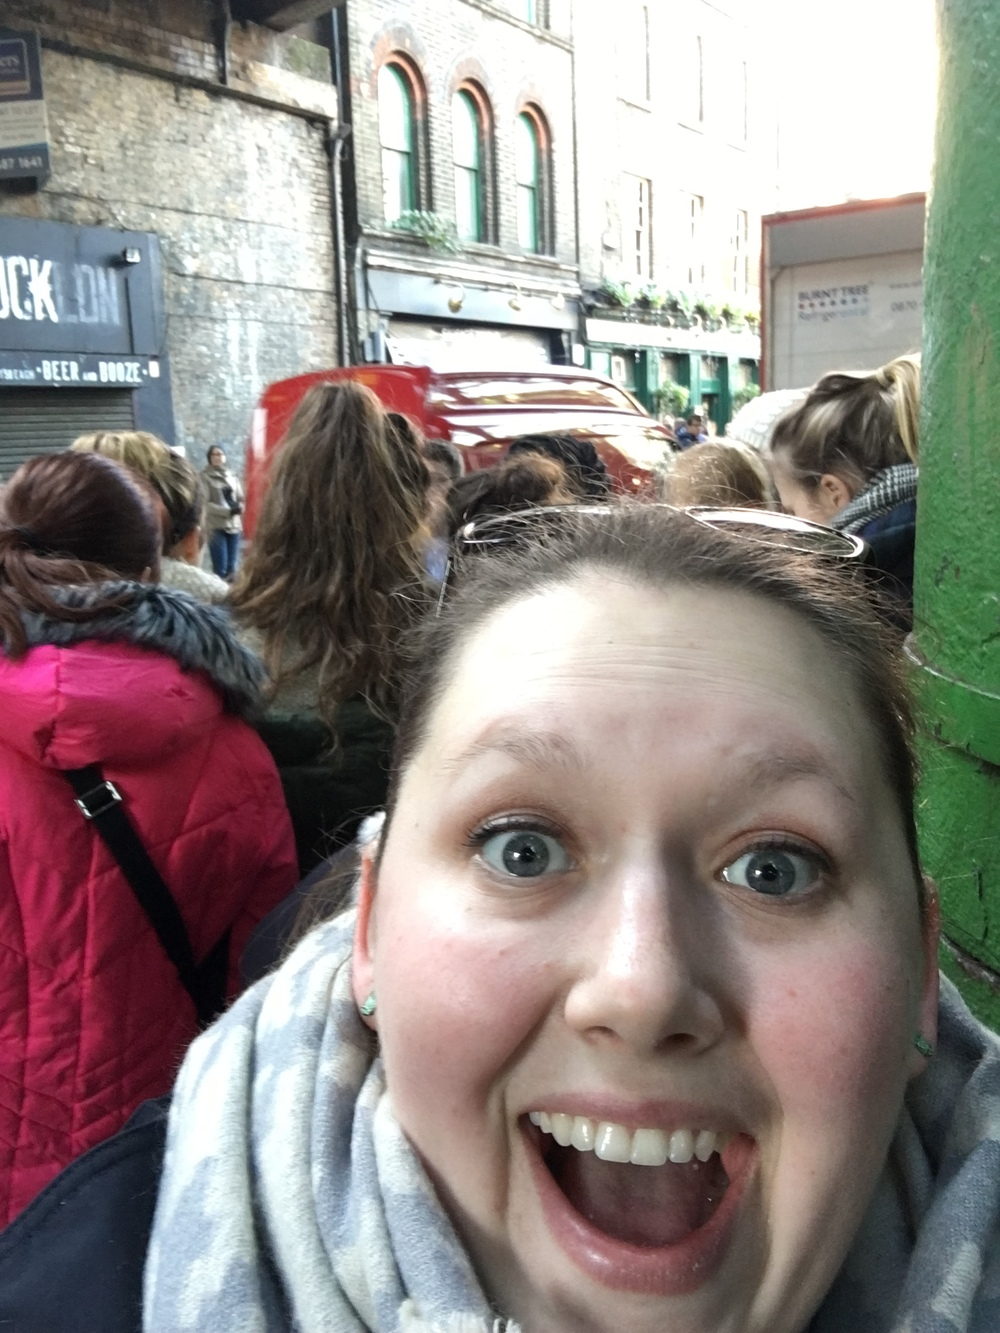 The storefront behind me was used as a filming location for The Leaky Cauldron in Harry Potter and the Prisoner of Azkaban.